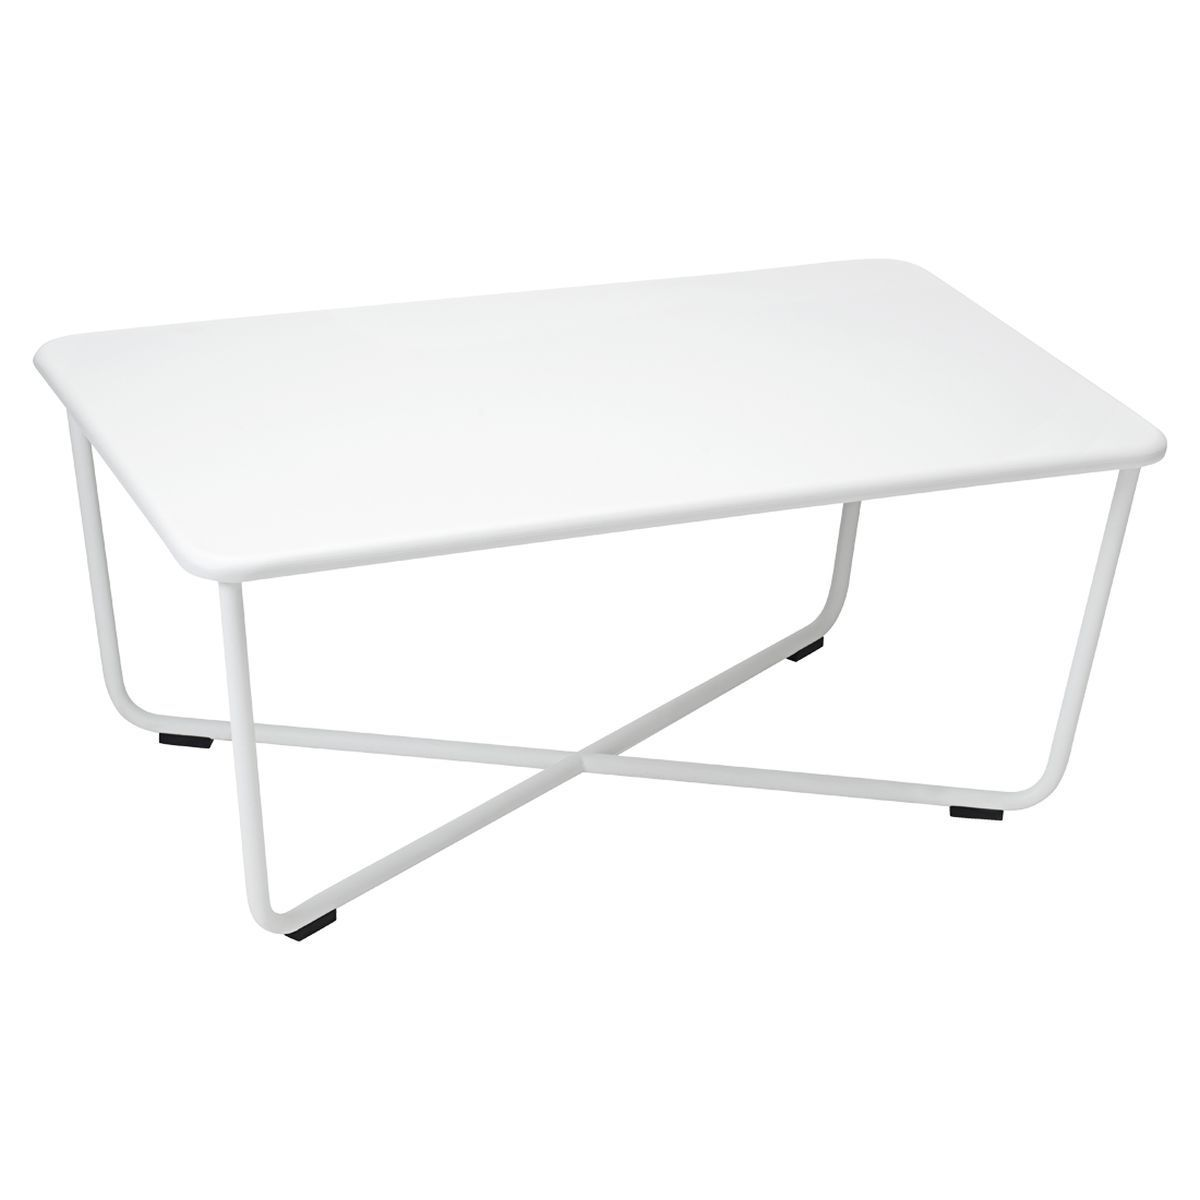 Cotton White Low Tables Metal Coffee Table Outdoor Coffee Tables